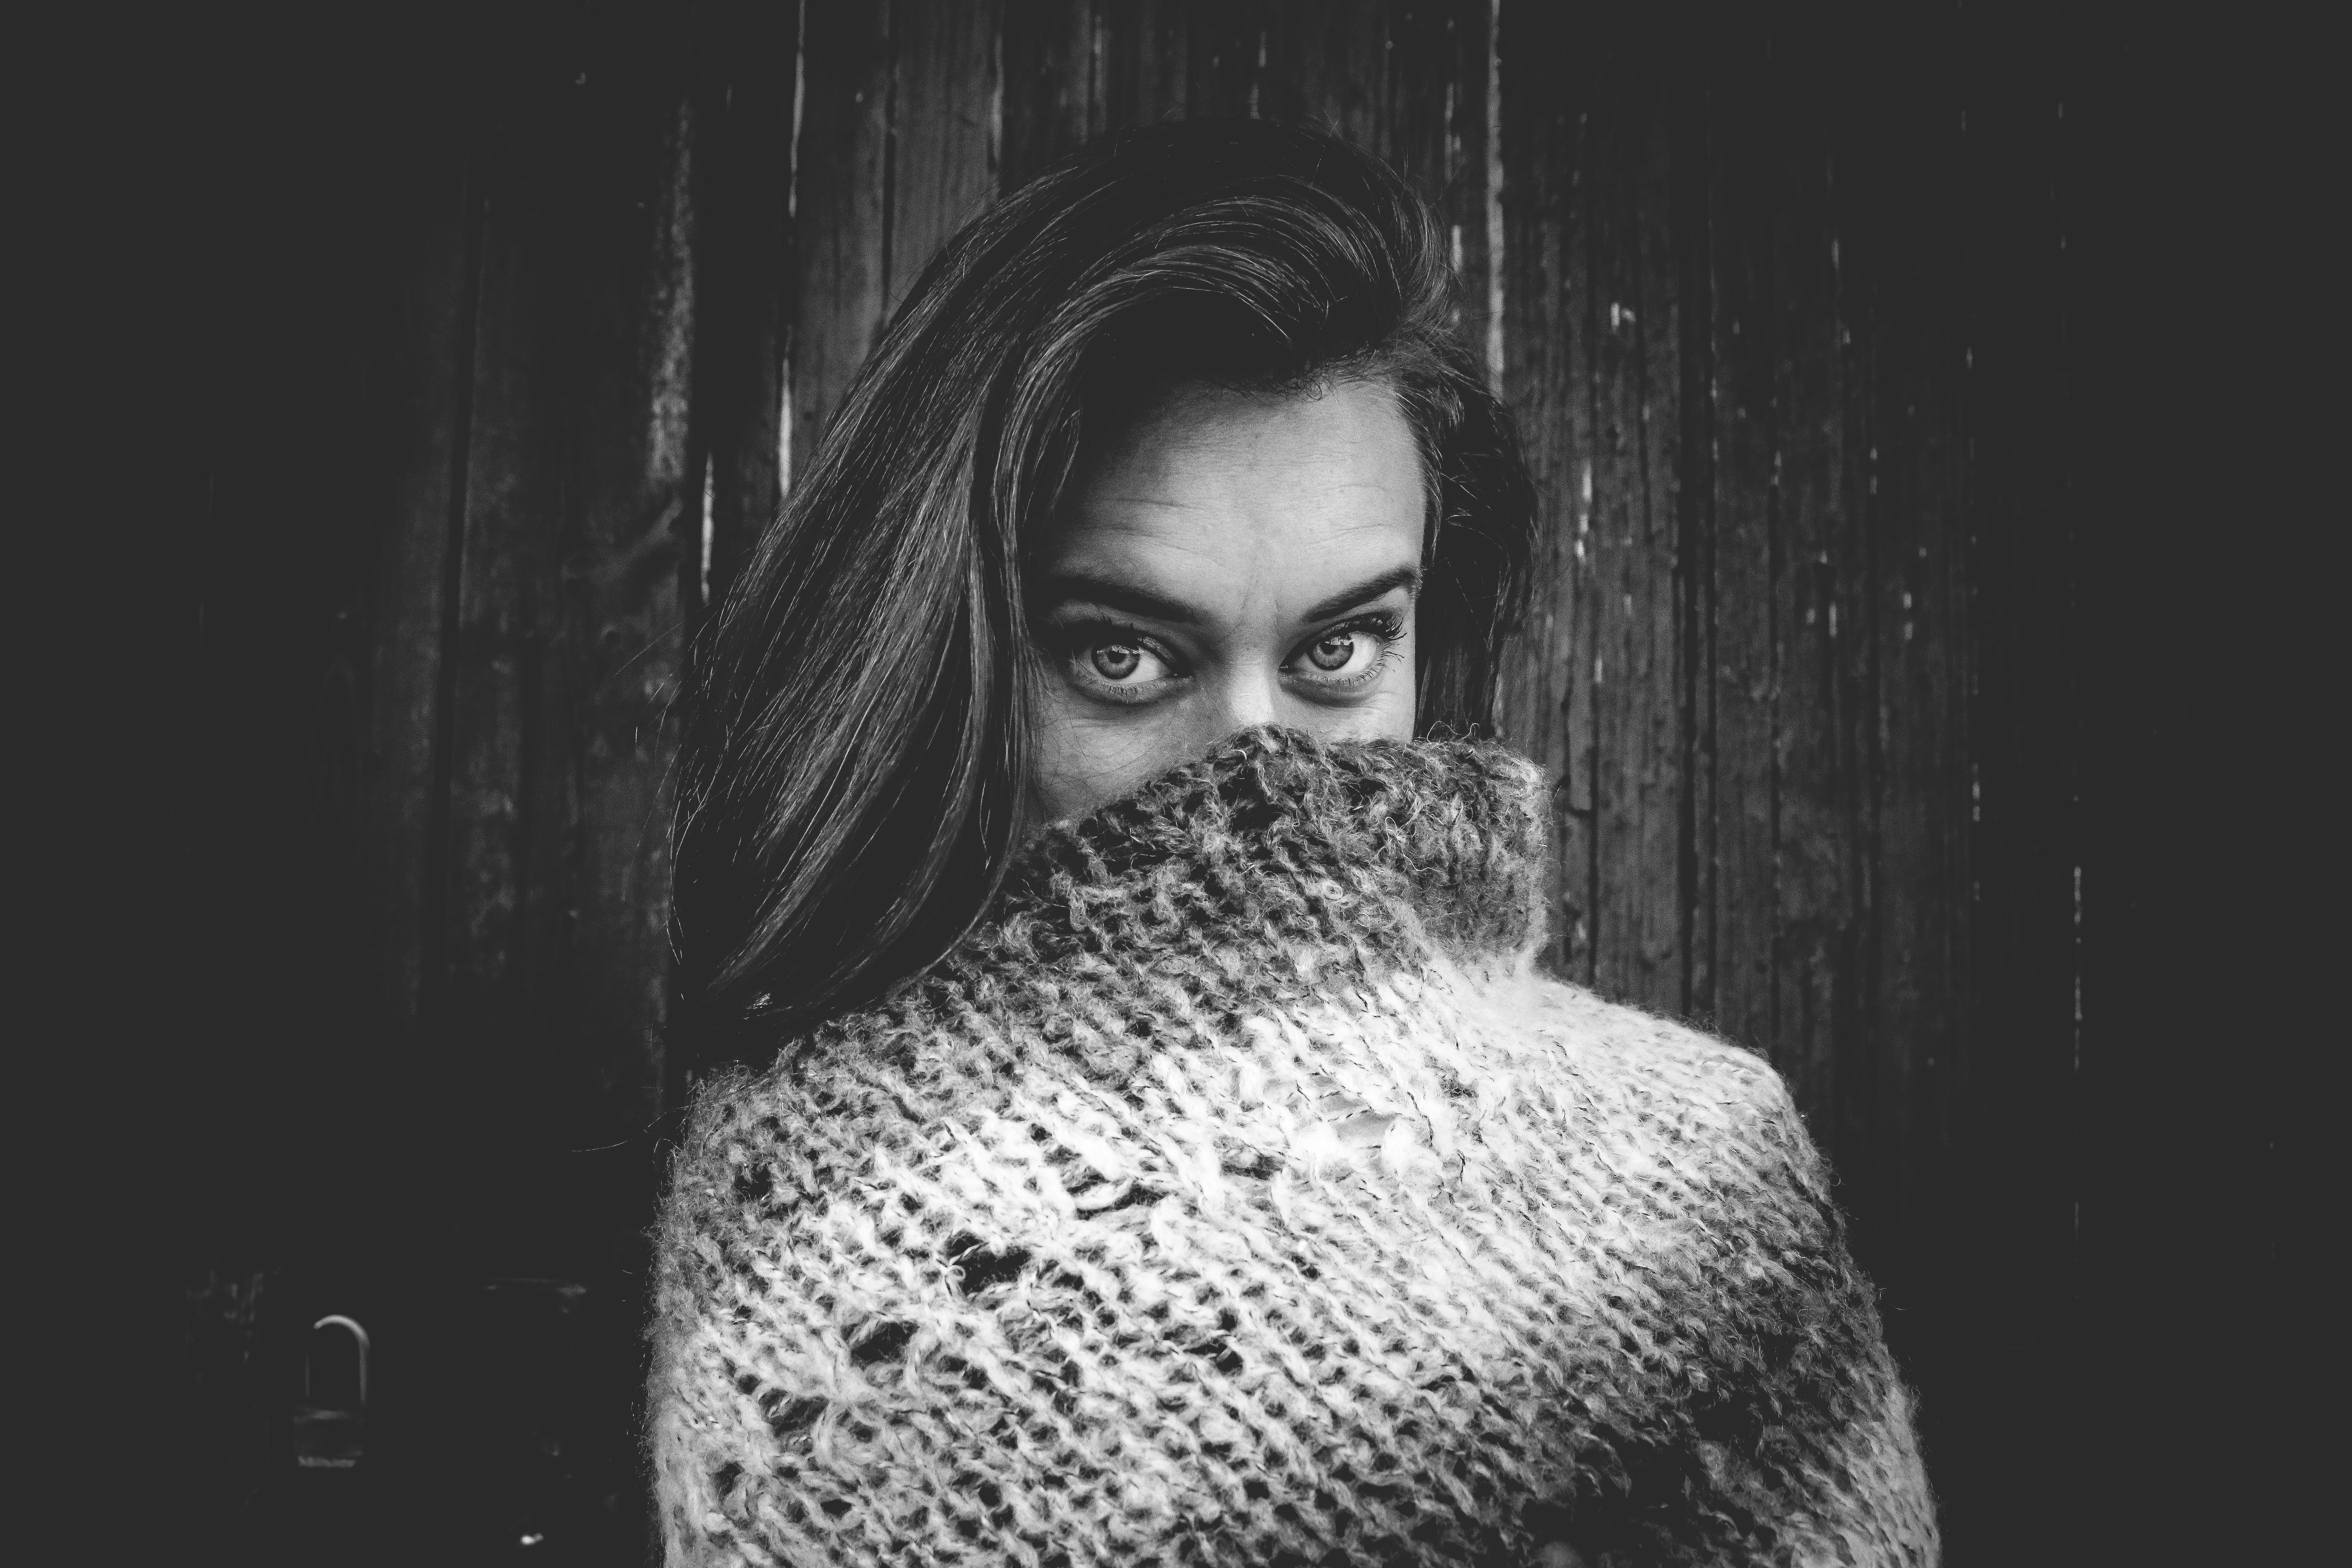 Grayscale Photo of Woman Covering Mouth With Knitted Textile